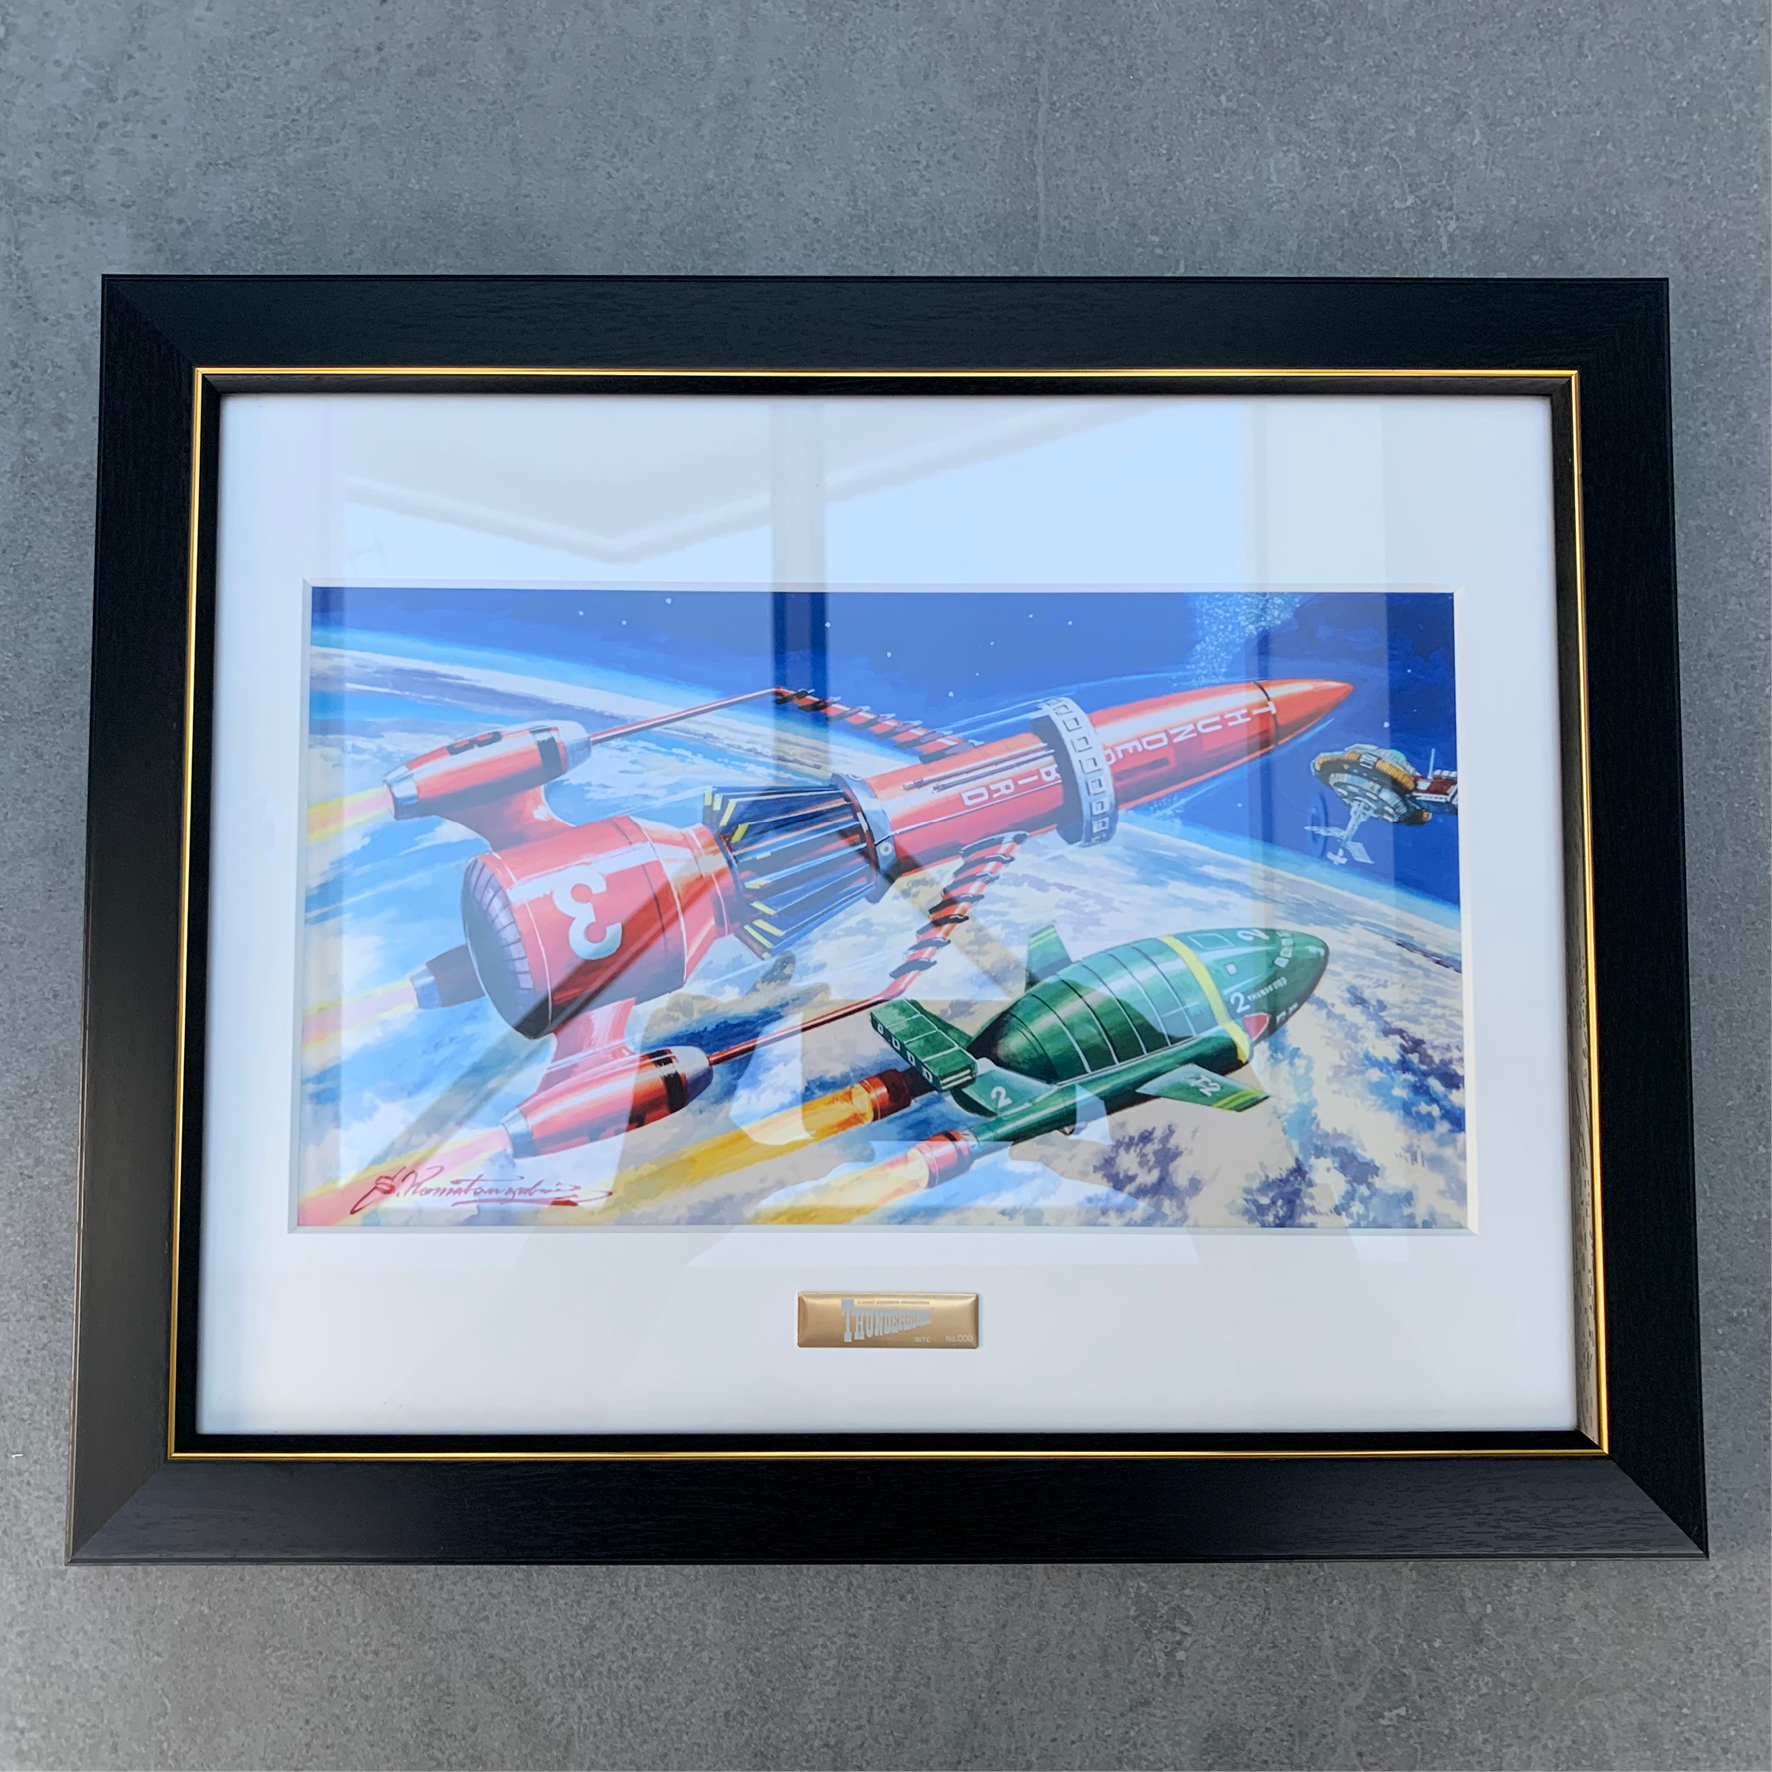 Framed print of Thunderbirds 2 and 3 artwork for Imai's model kit